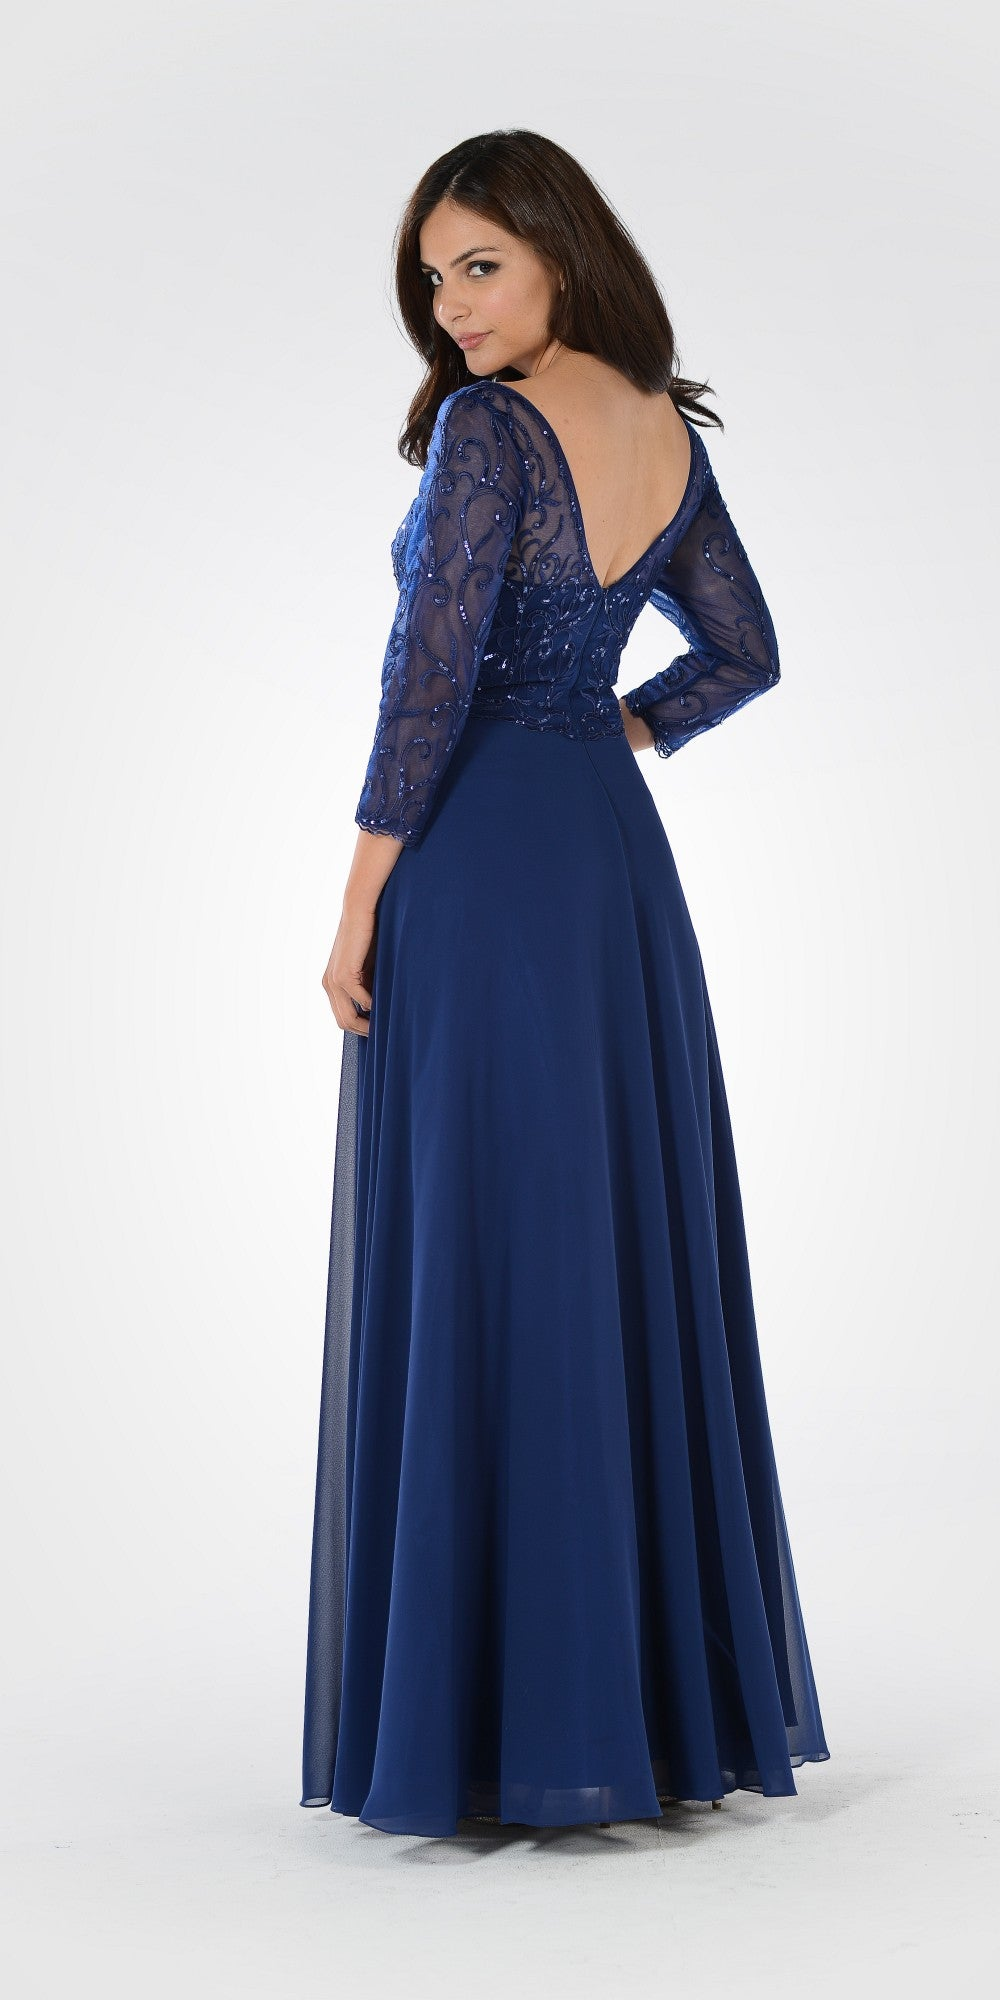 V-Neck Mid Sleeves Lace Top A-Line Formal Dress Long Navy Blue